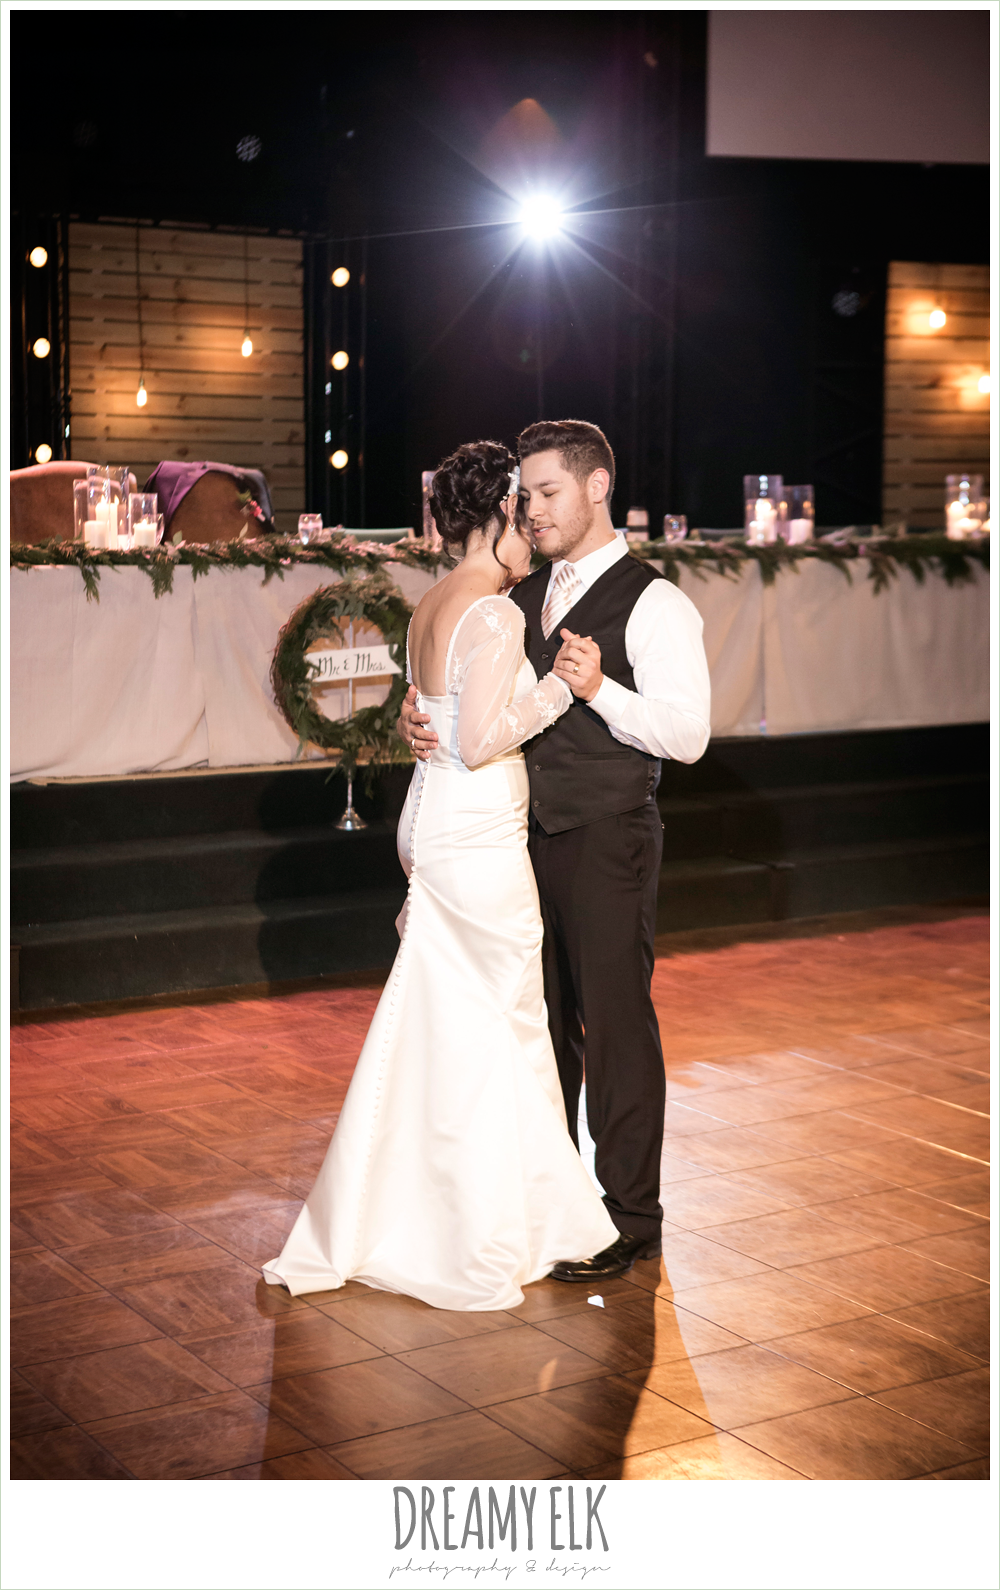 bride and groom first dance, rustic, winter december church wedding photo {dreamy elk photography and design}